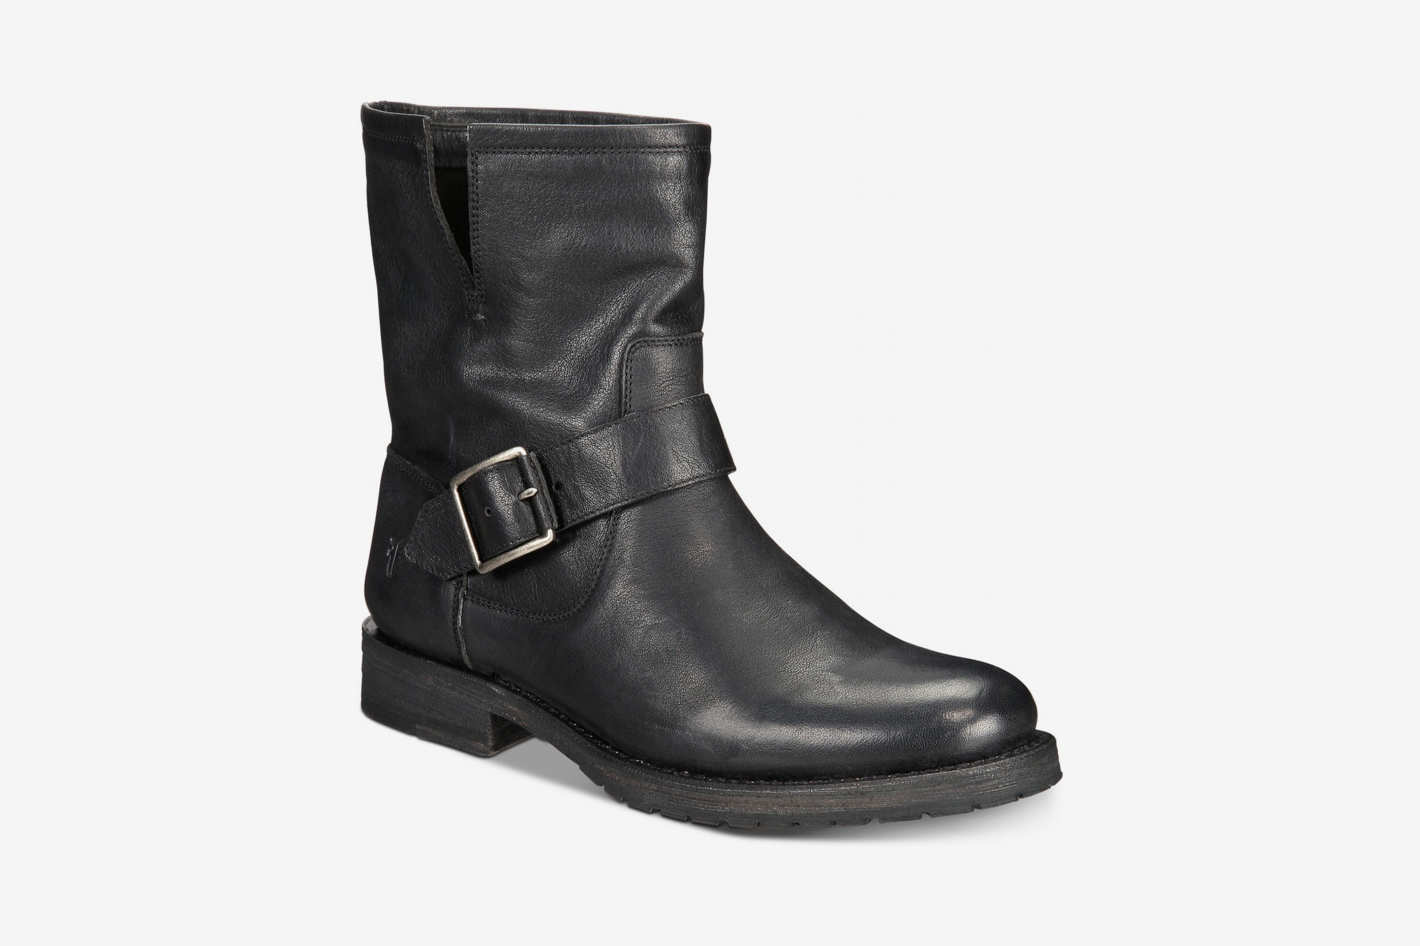 5768180e22b 11 Best Women s Boots and Chelsea Boots for Wide Feet 2018